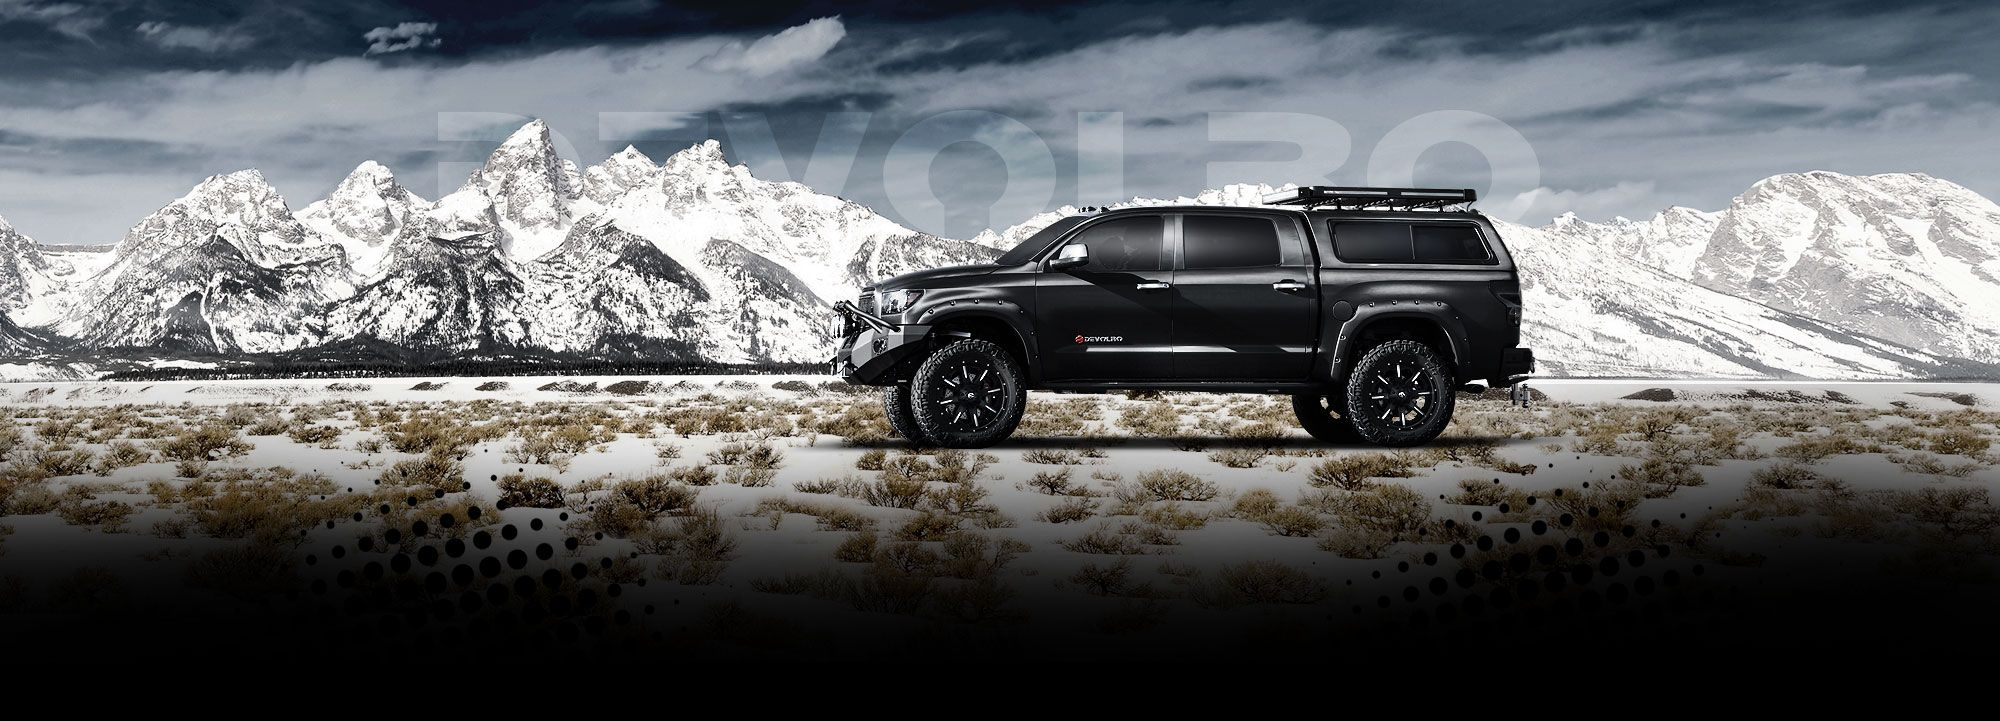 toyota tundra off road accessories Google Search auto